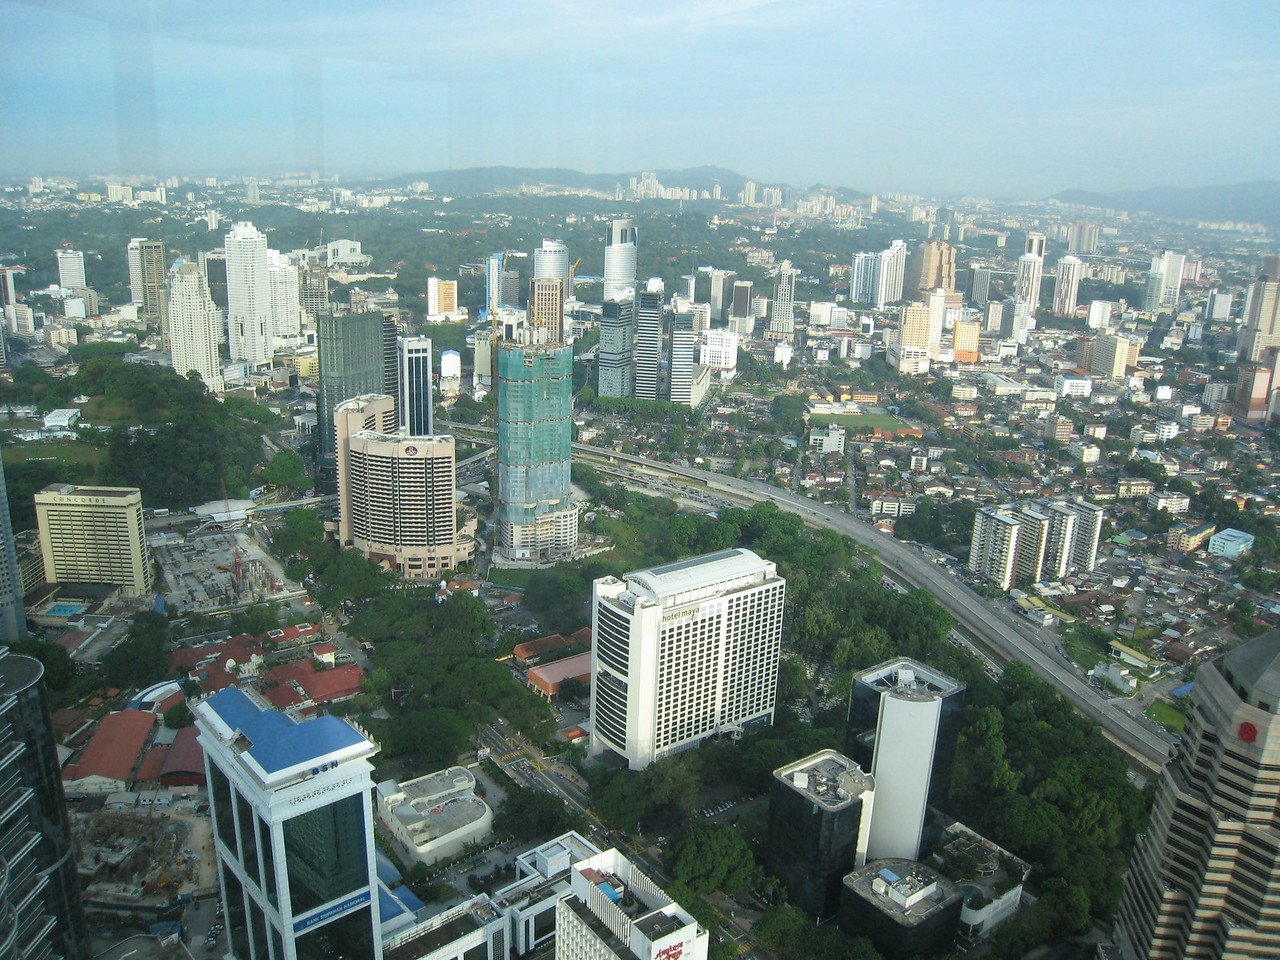 The Accenture office in KL is located on teh 65th and 66th floors of the Petronas Twin Towers.